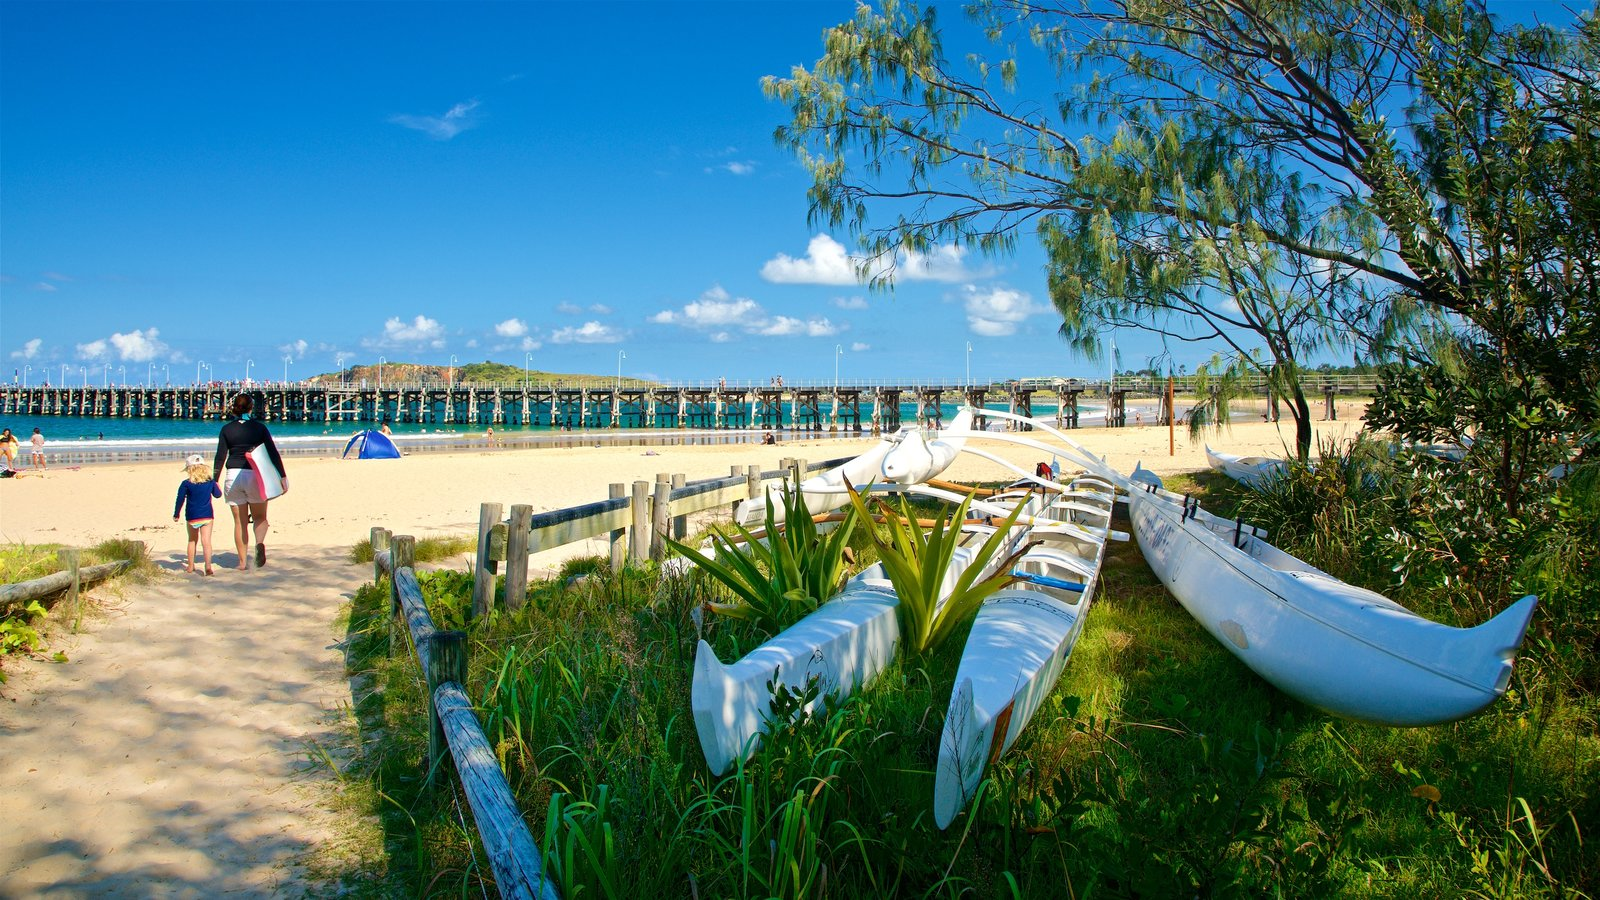 Coffs Harbour featuring a beach and general coastal views as well as a family